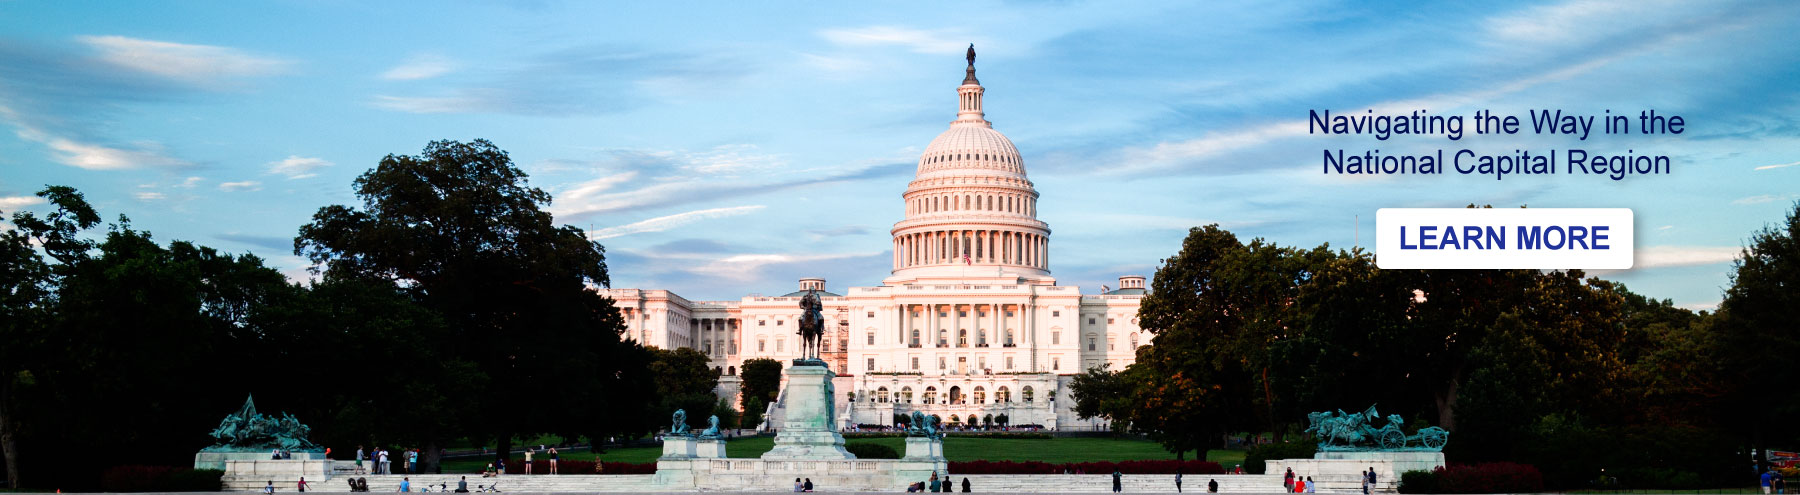 Navigating the way in the national capital region - learn more